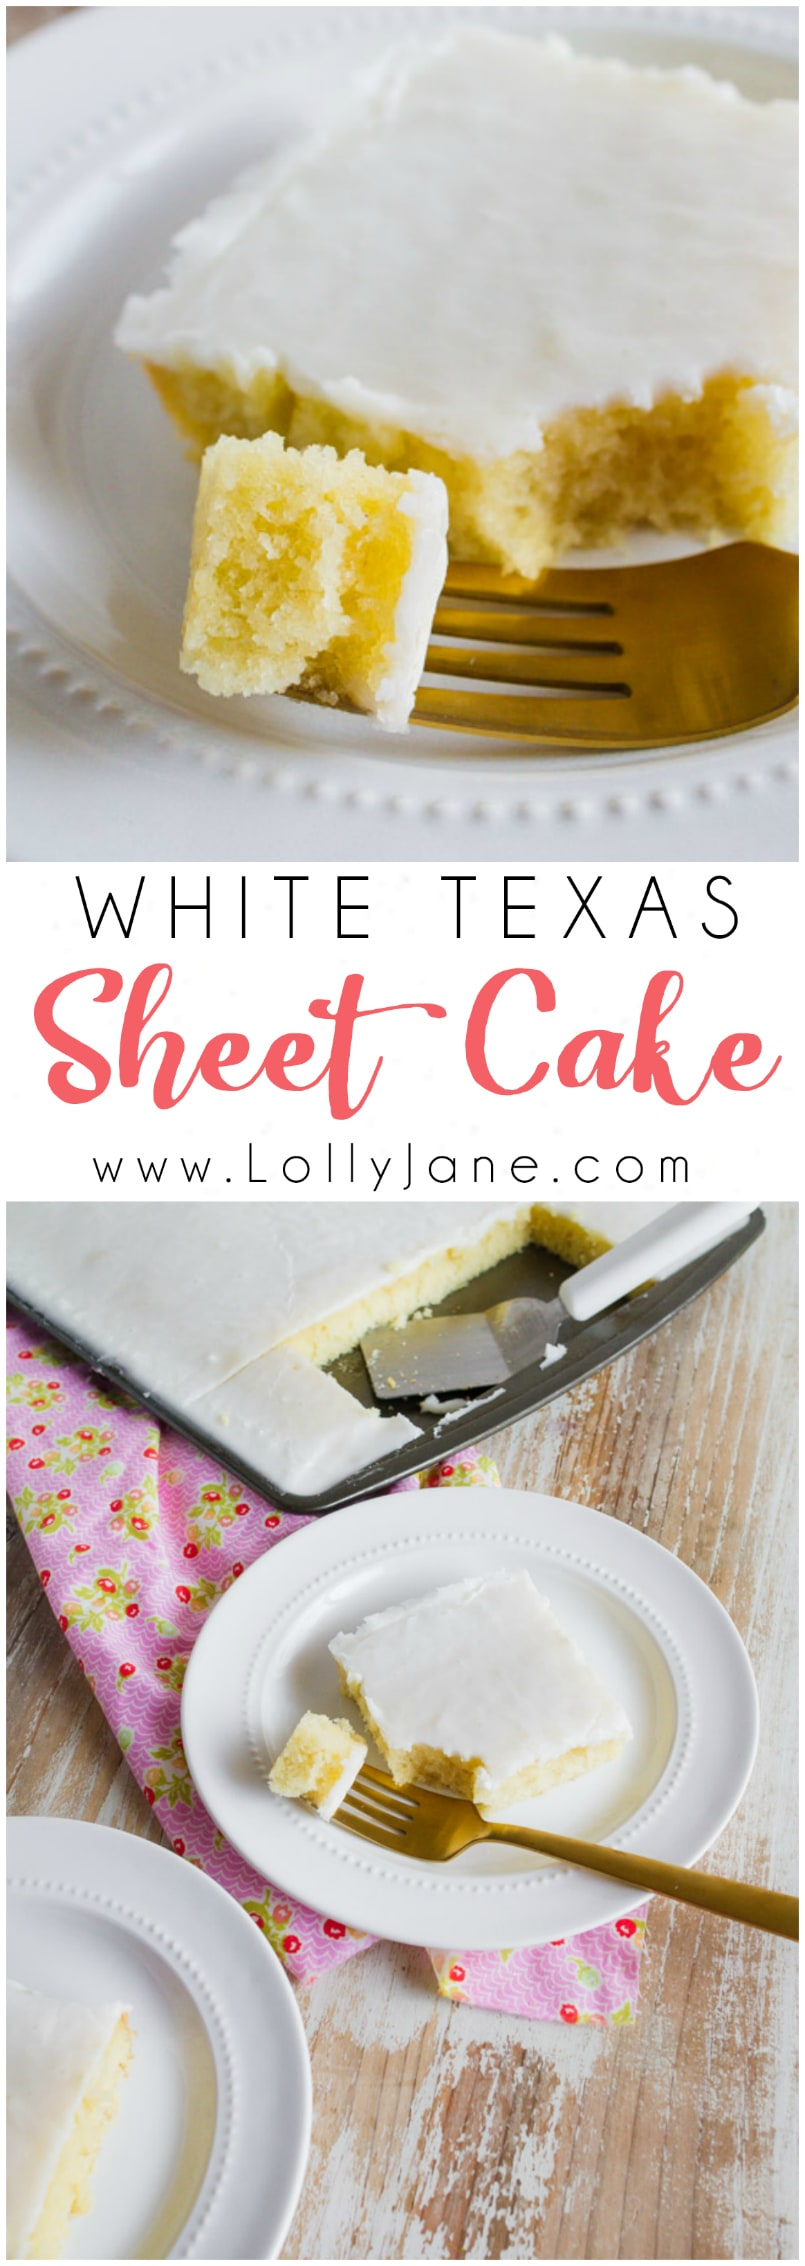 Easy white Texas sheet cake recipe! Love this easy sheet cake dessert, so yummy! A family favorite dessert!